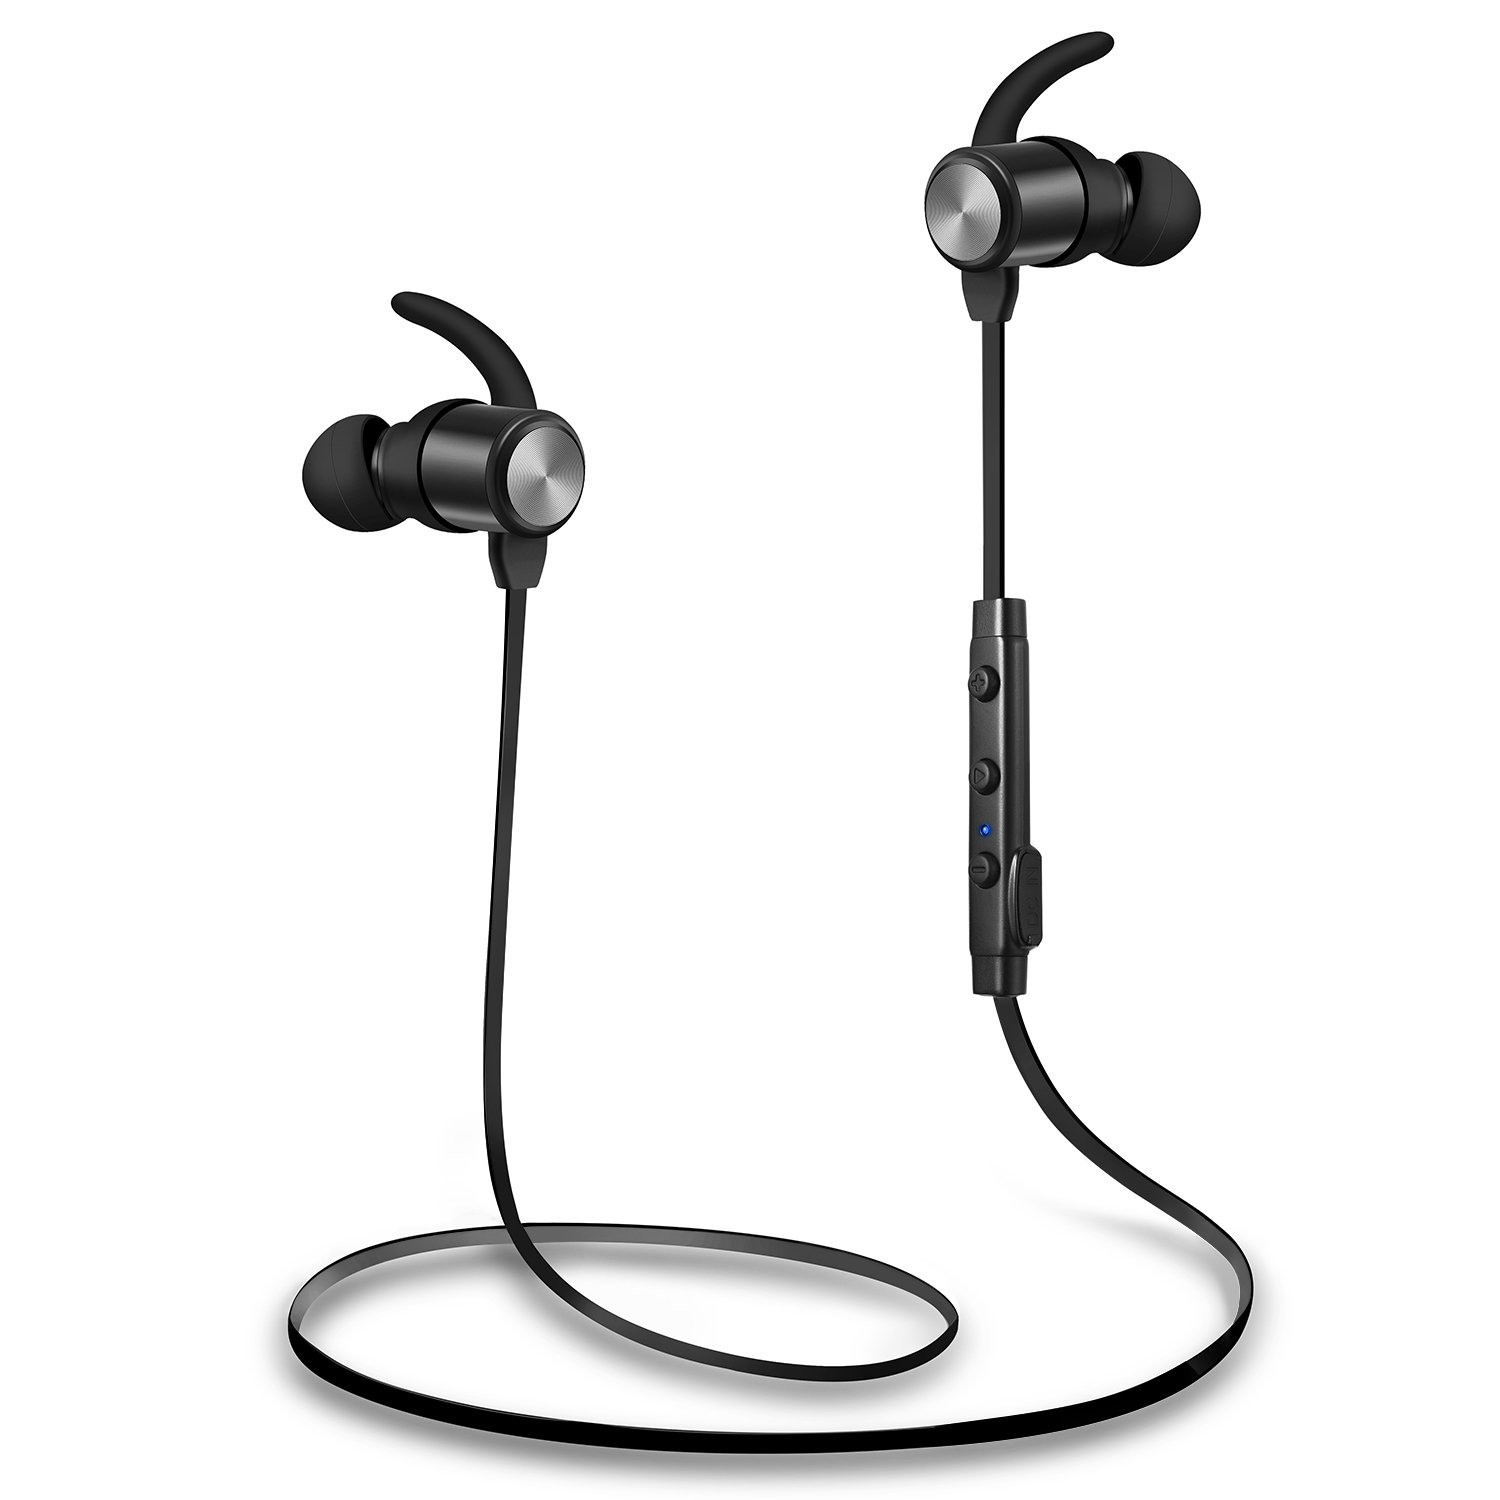 Bluetooth Headphones, Wireless Headphones, TOTU Sweatproof High Fidelity Stereo Bluetooth Earbuds Lightweight and Noise Canceling Wireless Earbuds Fit for Workout with Built-in Magnet